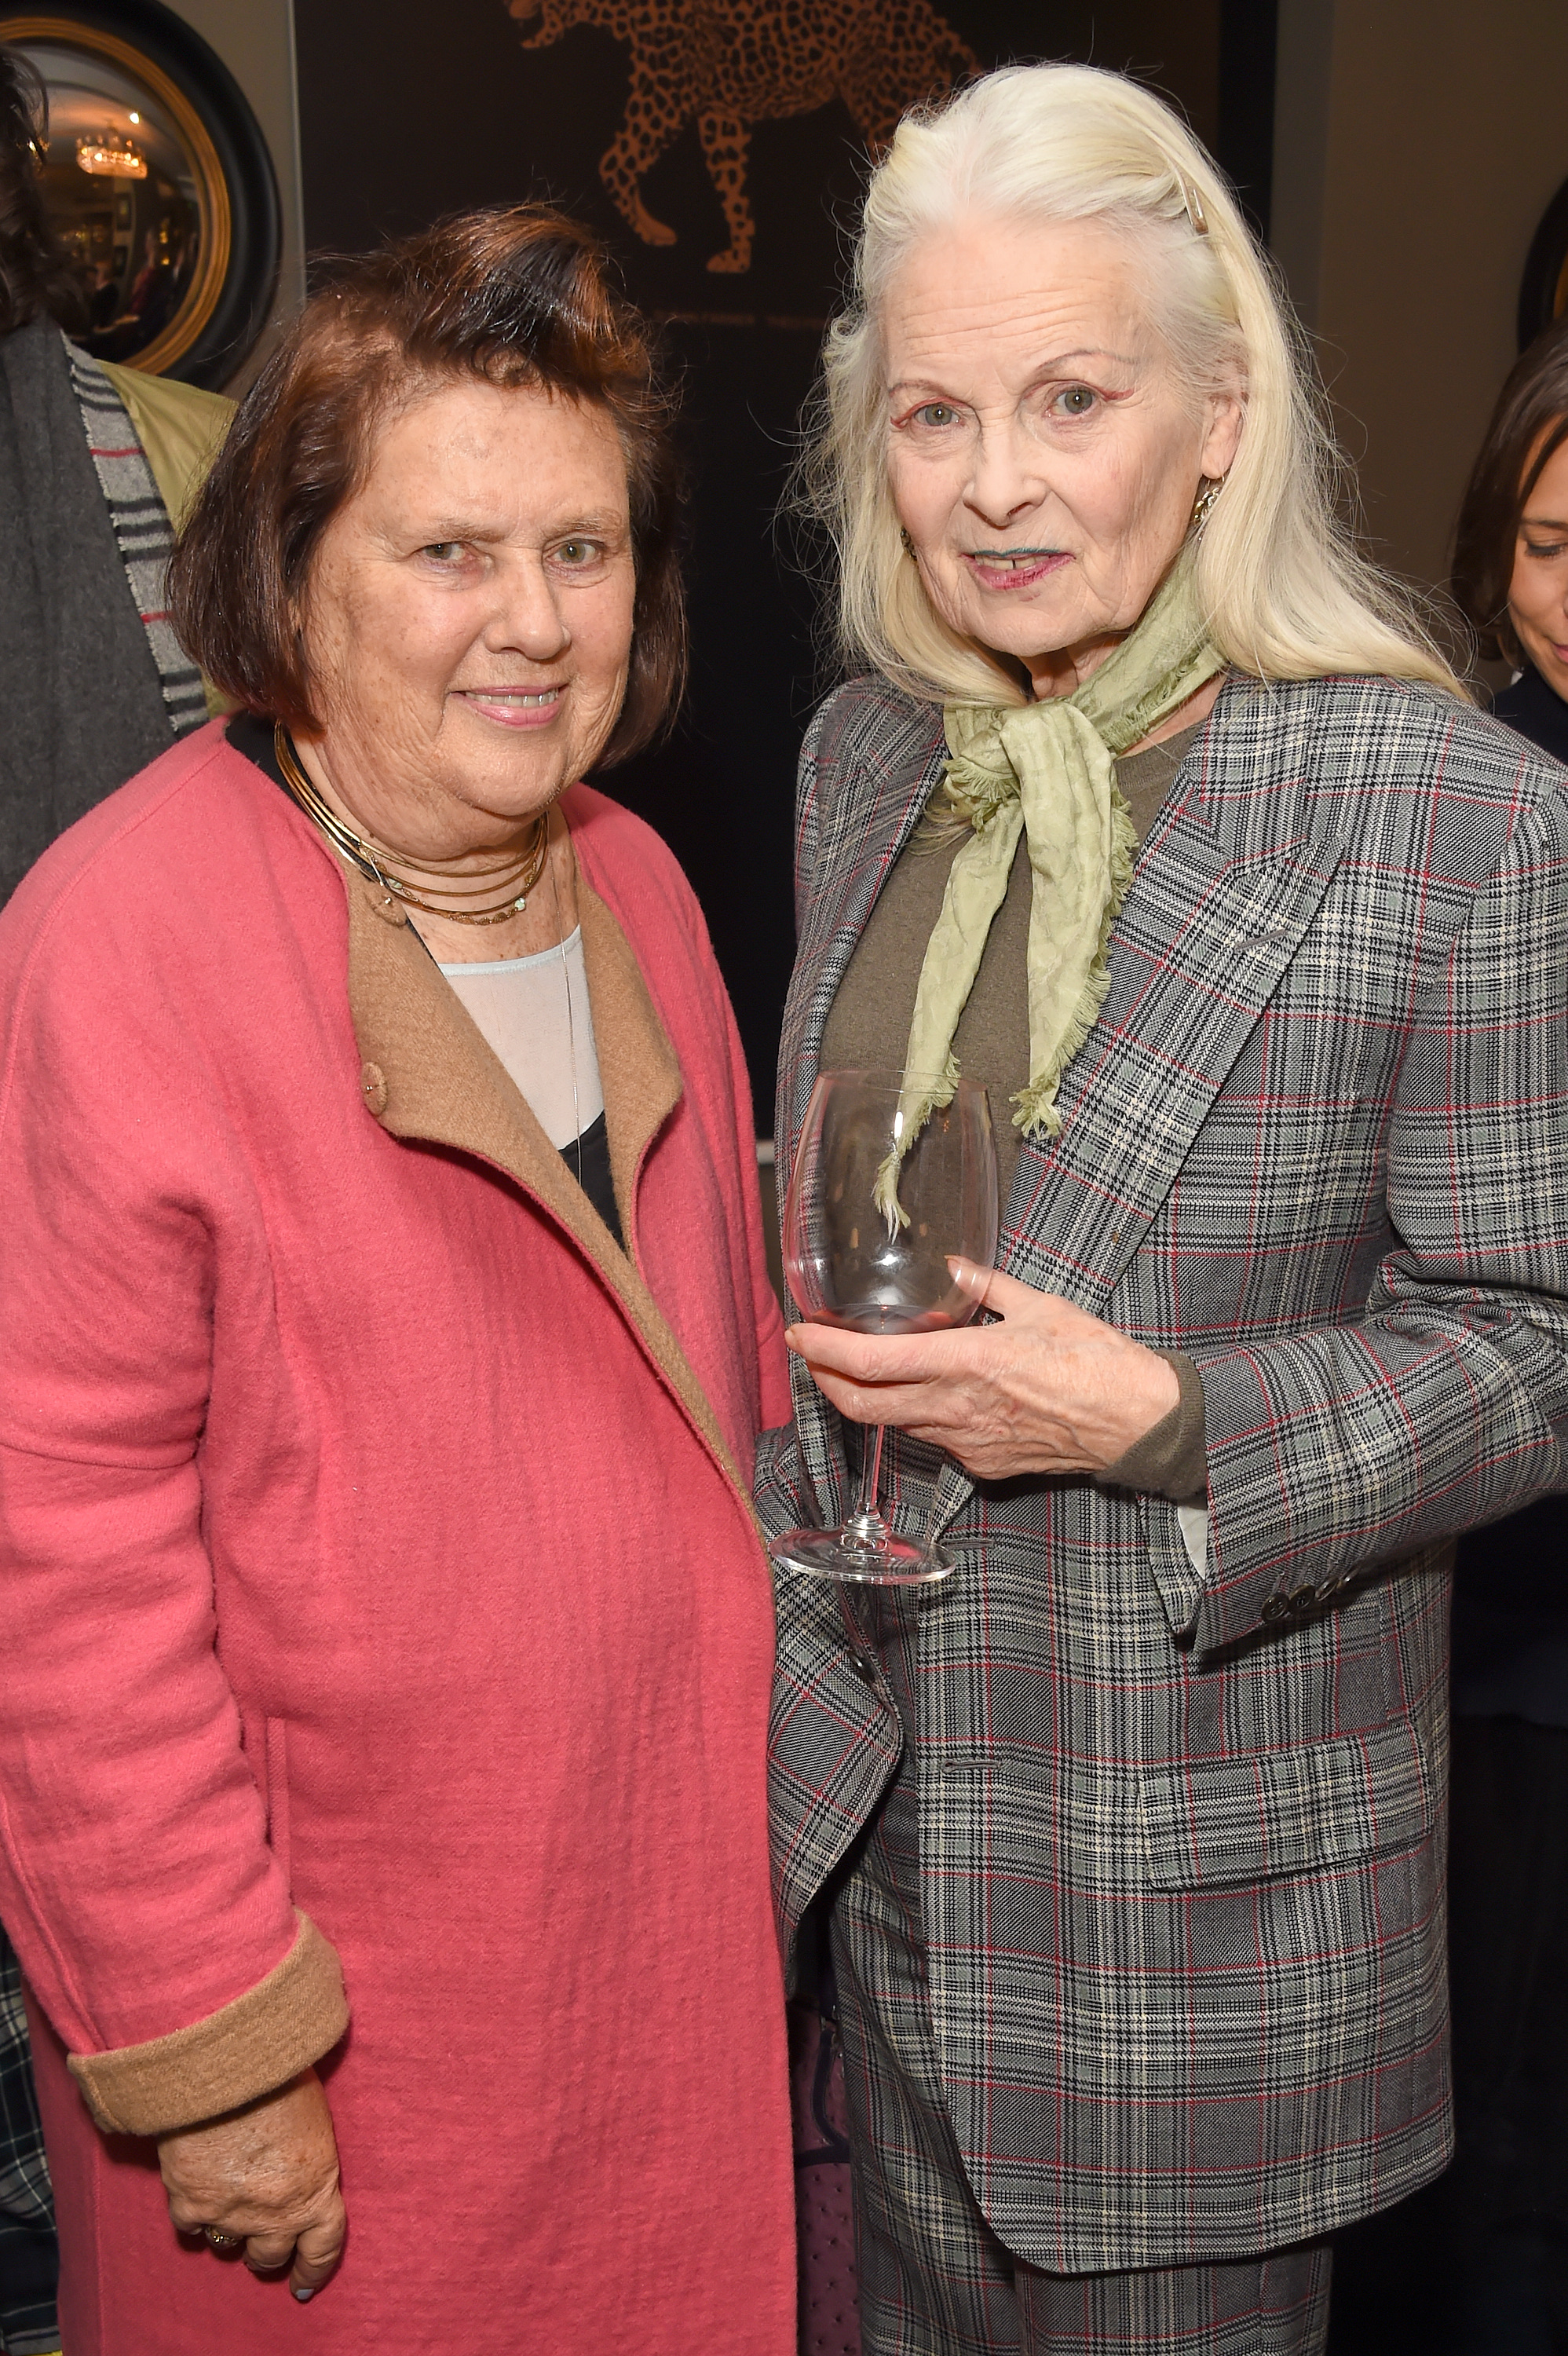 Suzy Menkes and Dame Vivienne Westwood. Courtesy of Dave Benett.